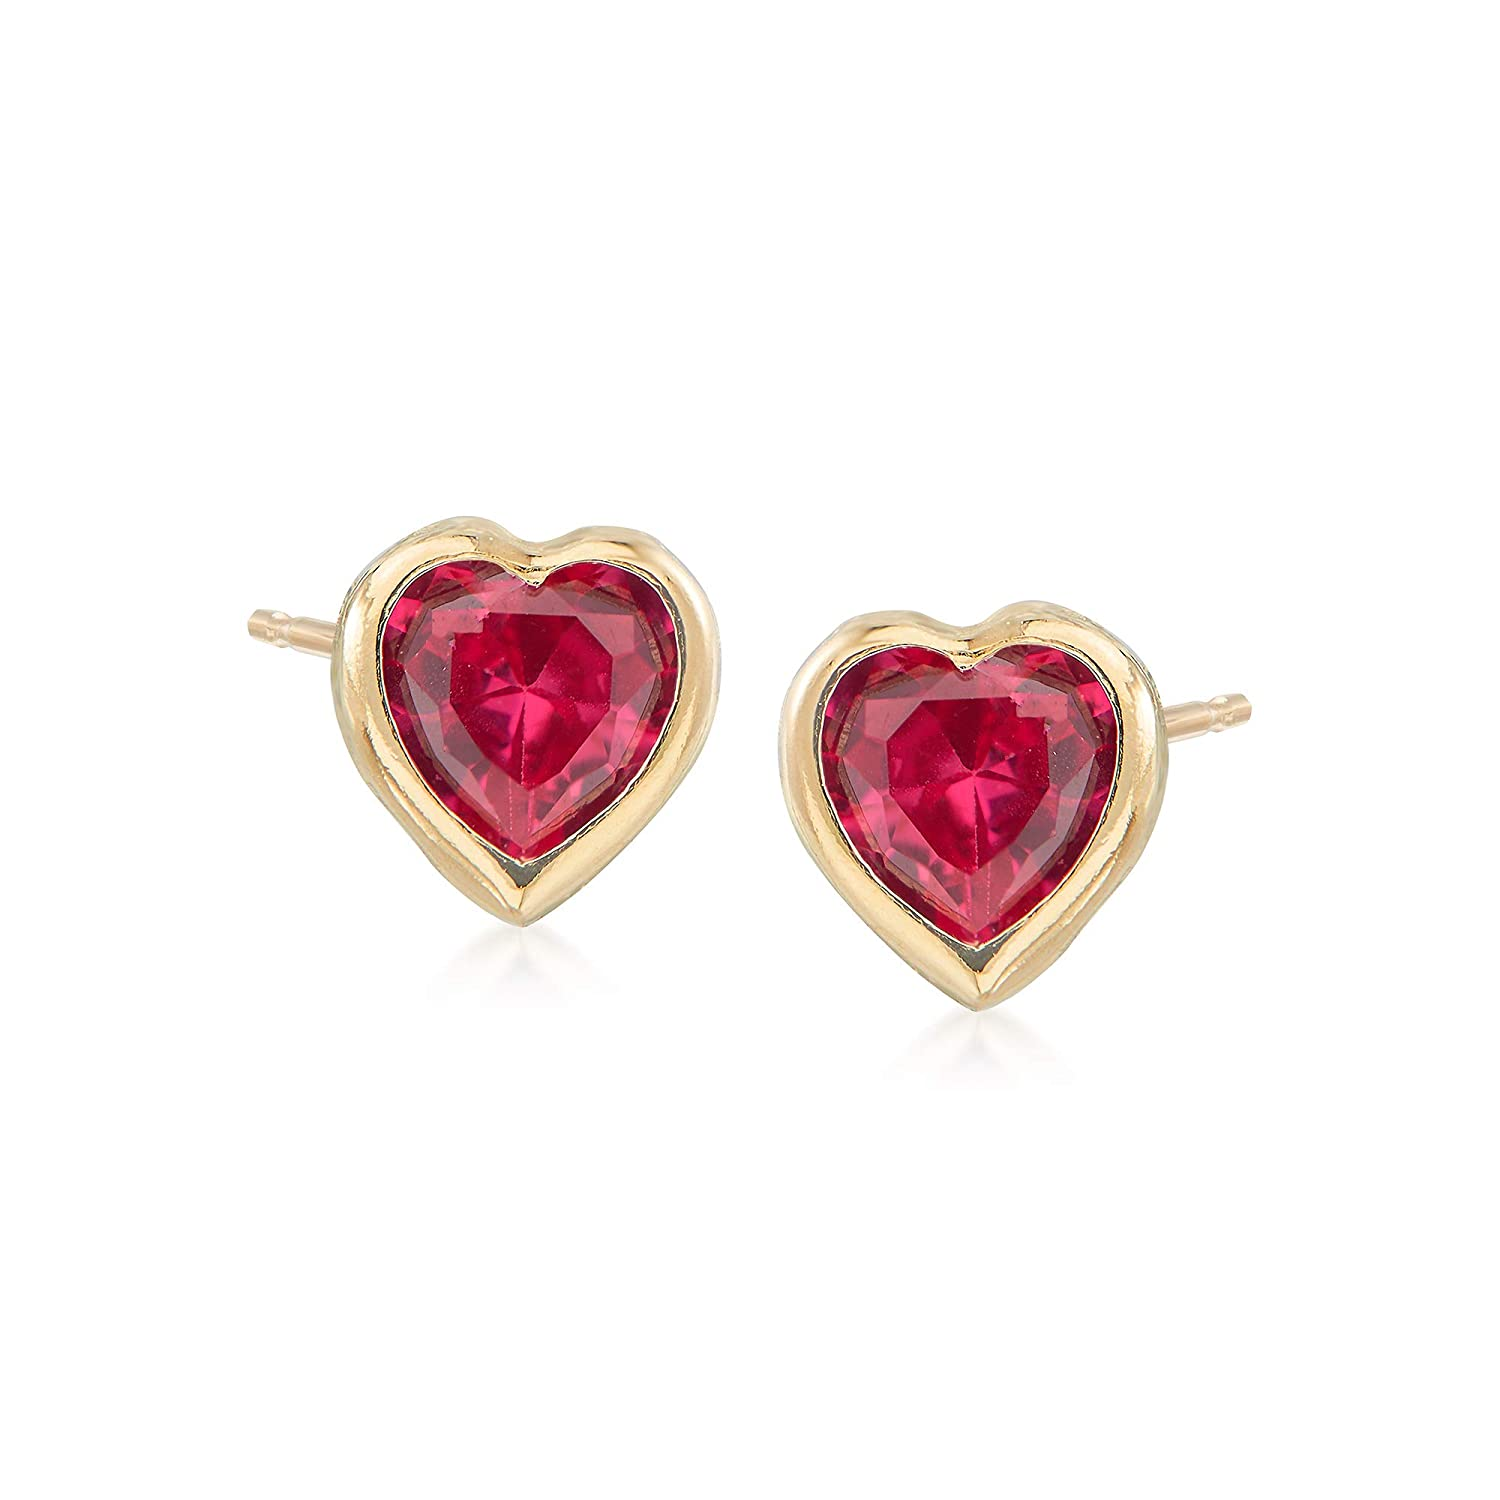 Ross-Simons Childs Simulated Ruby Heart Stud Earrings in 14kt Yellow Gold